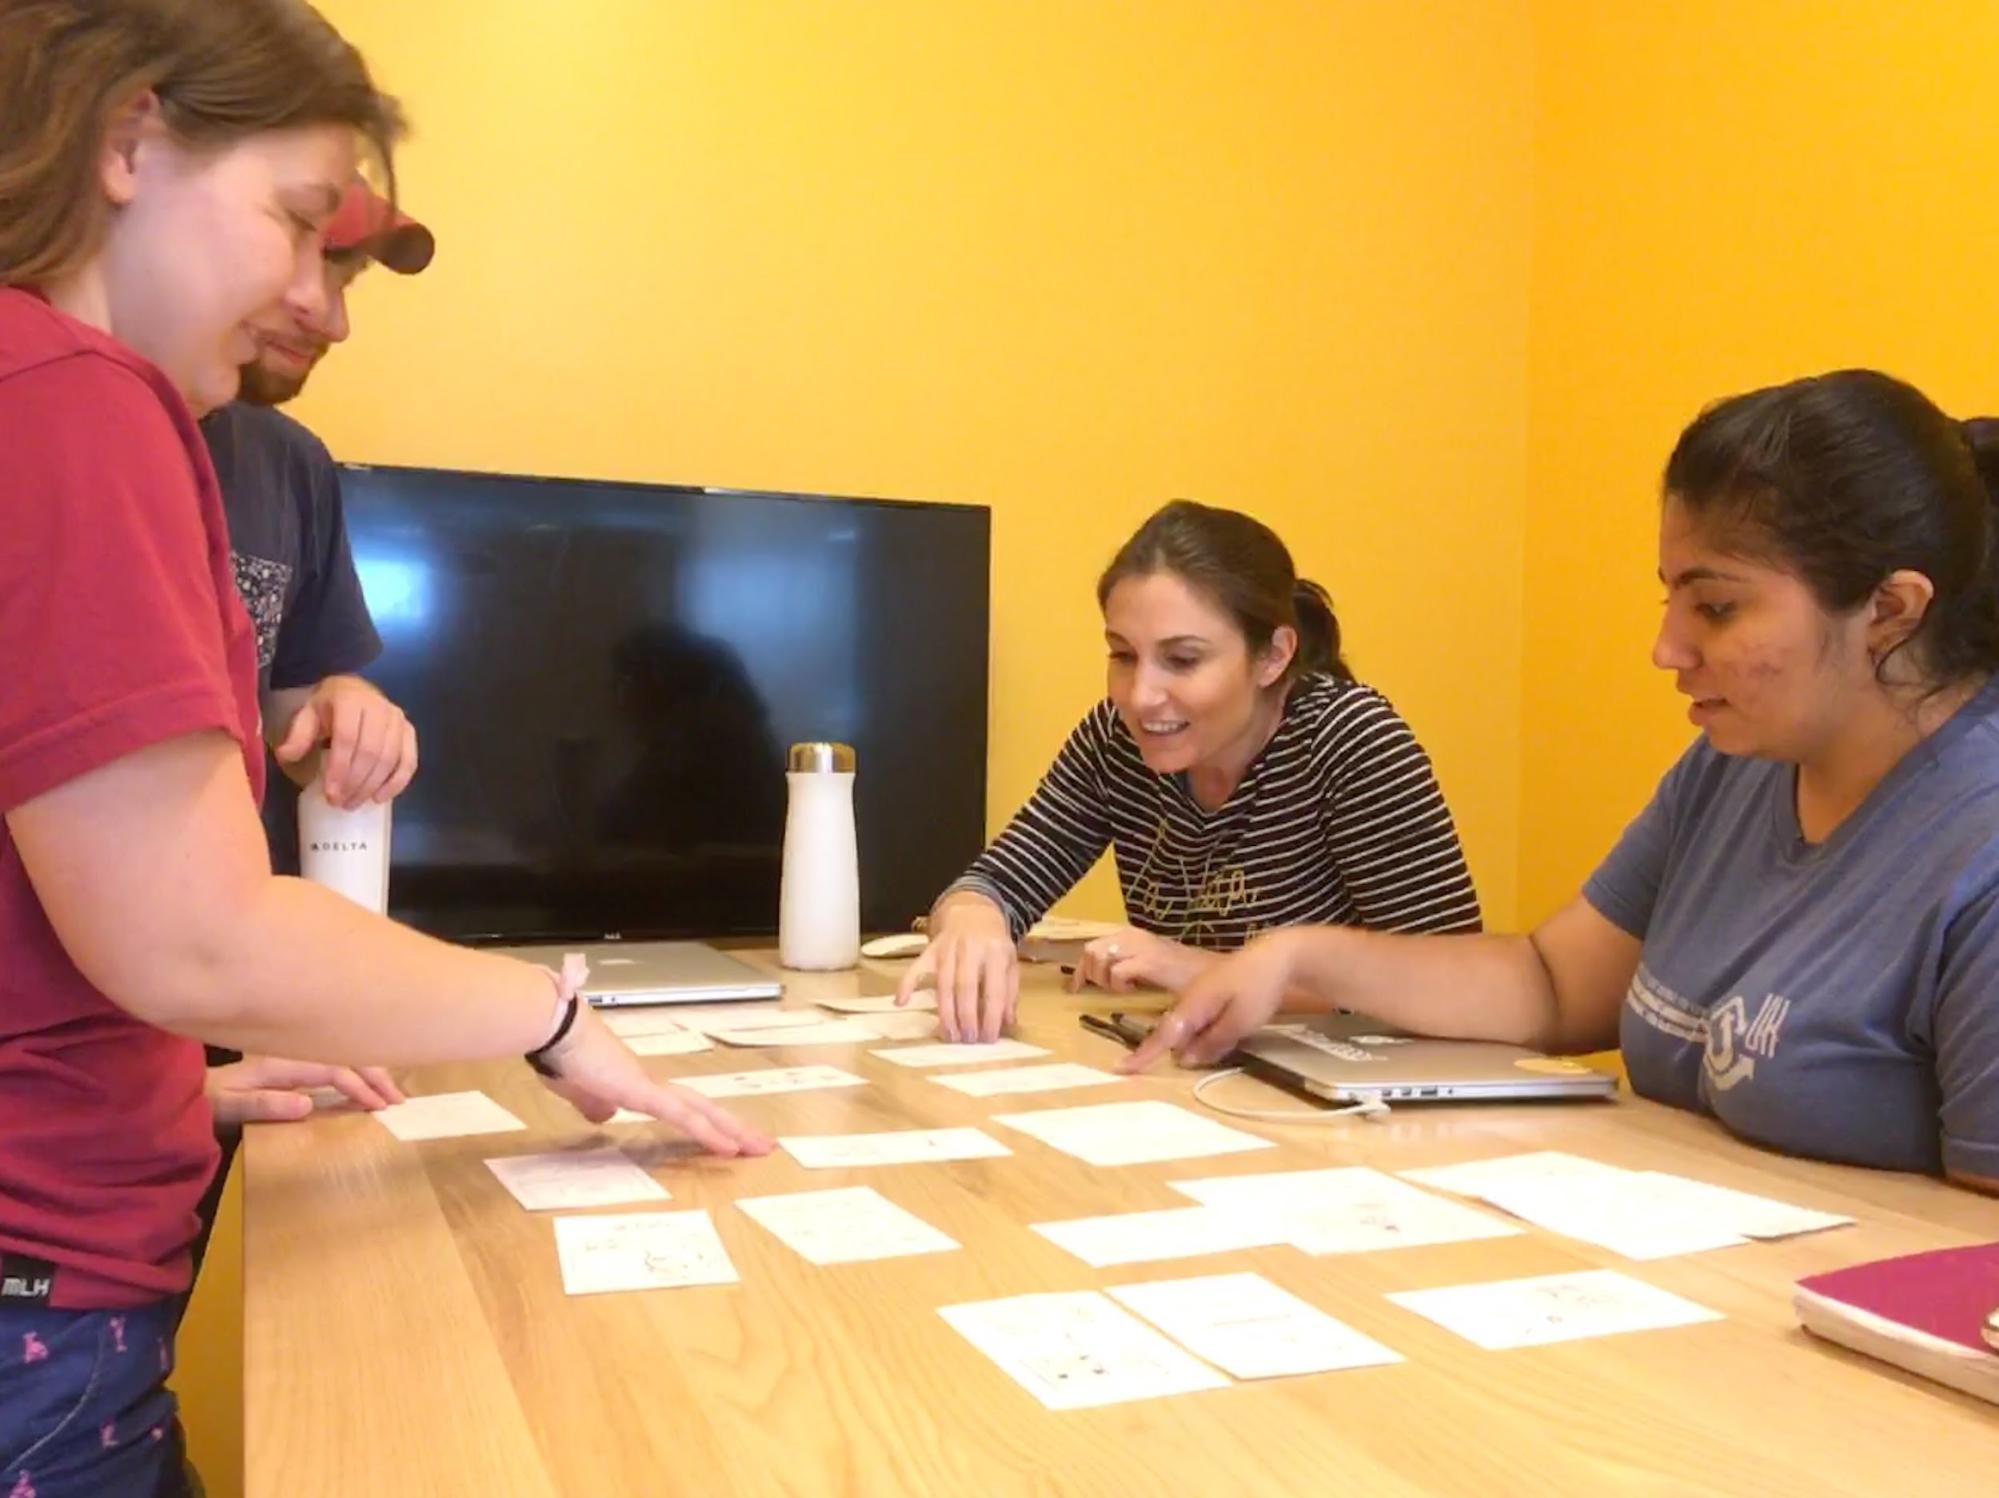 Our team sorting out design ideas